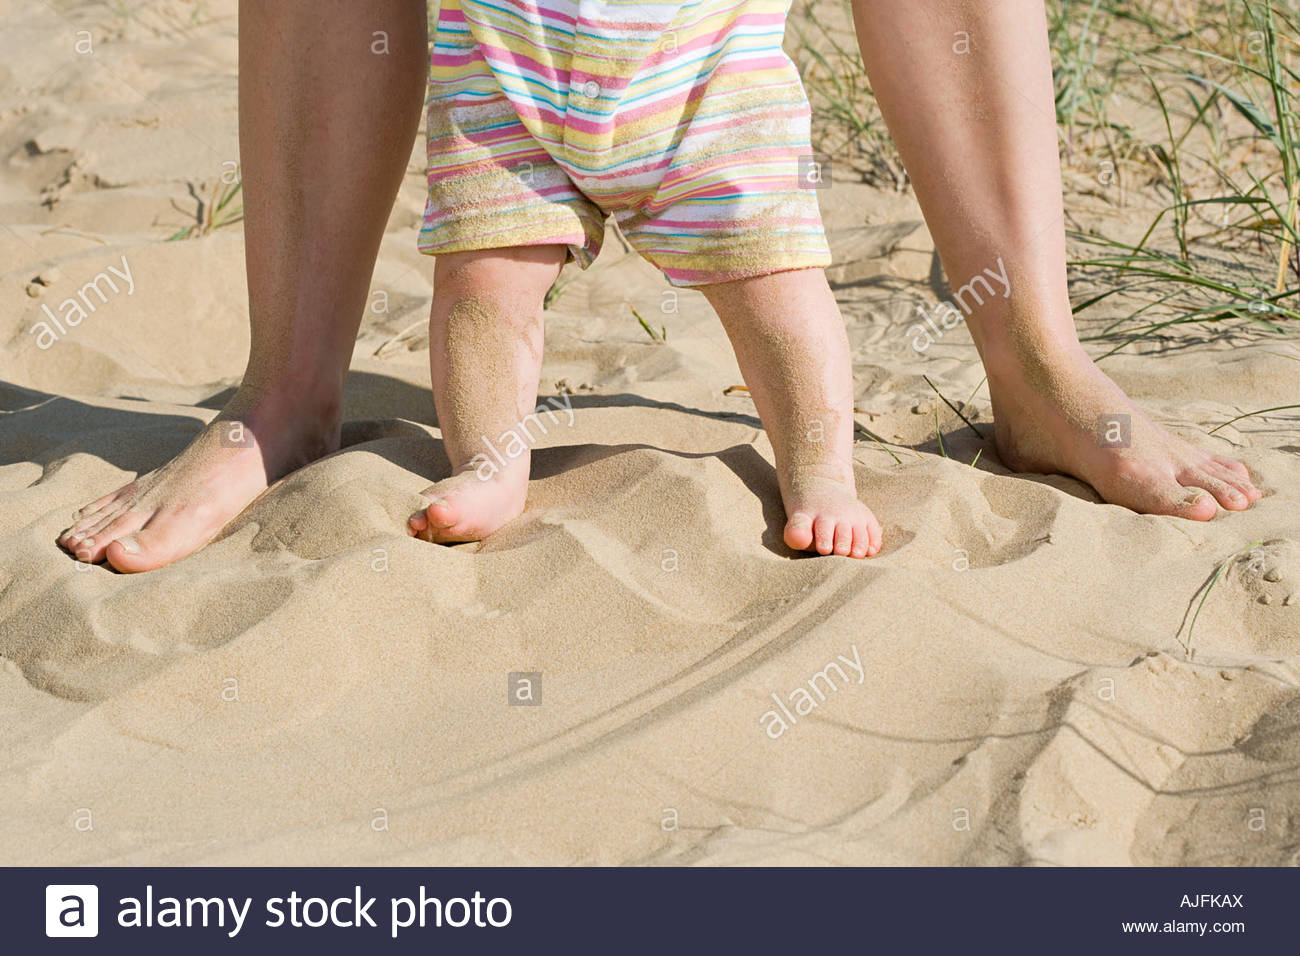 A babys legs and an adults legs - Stock Image